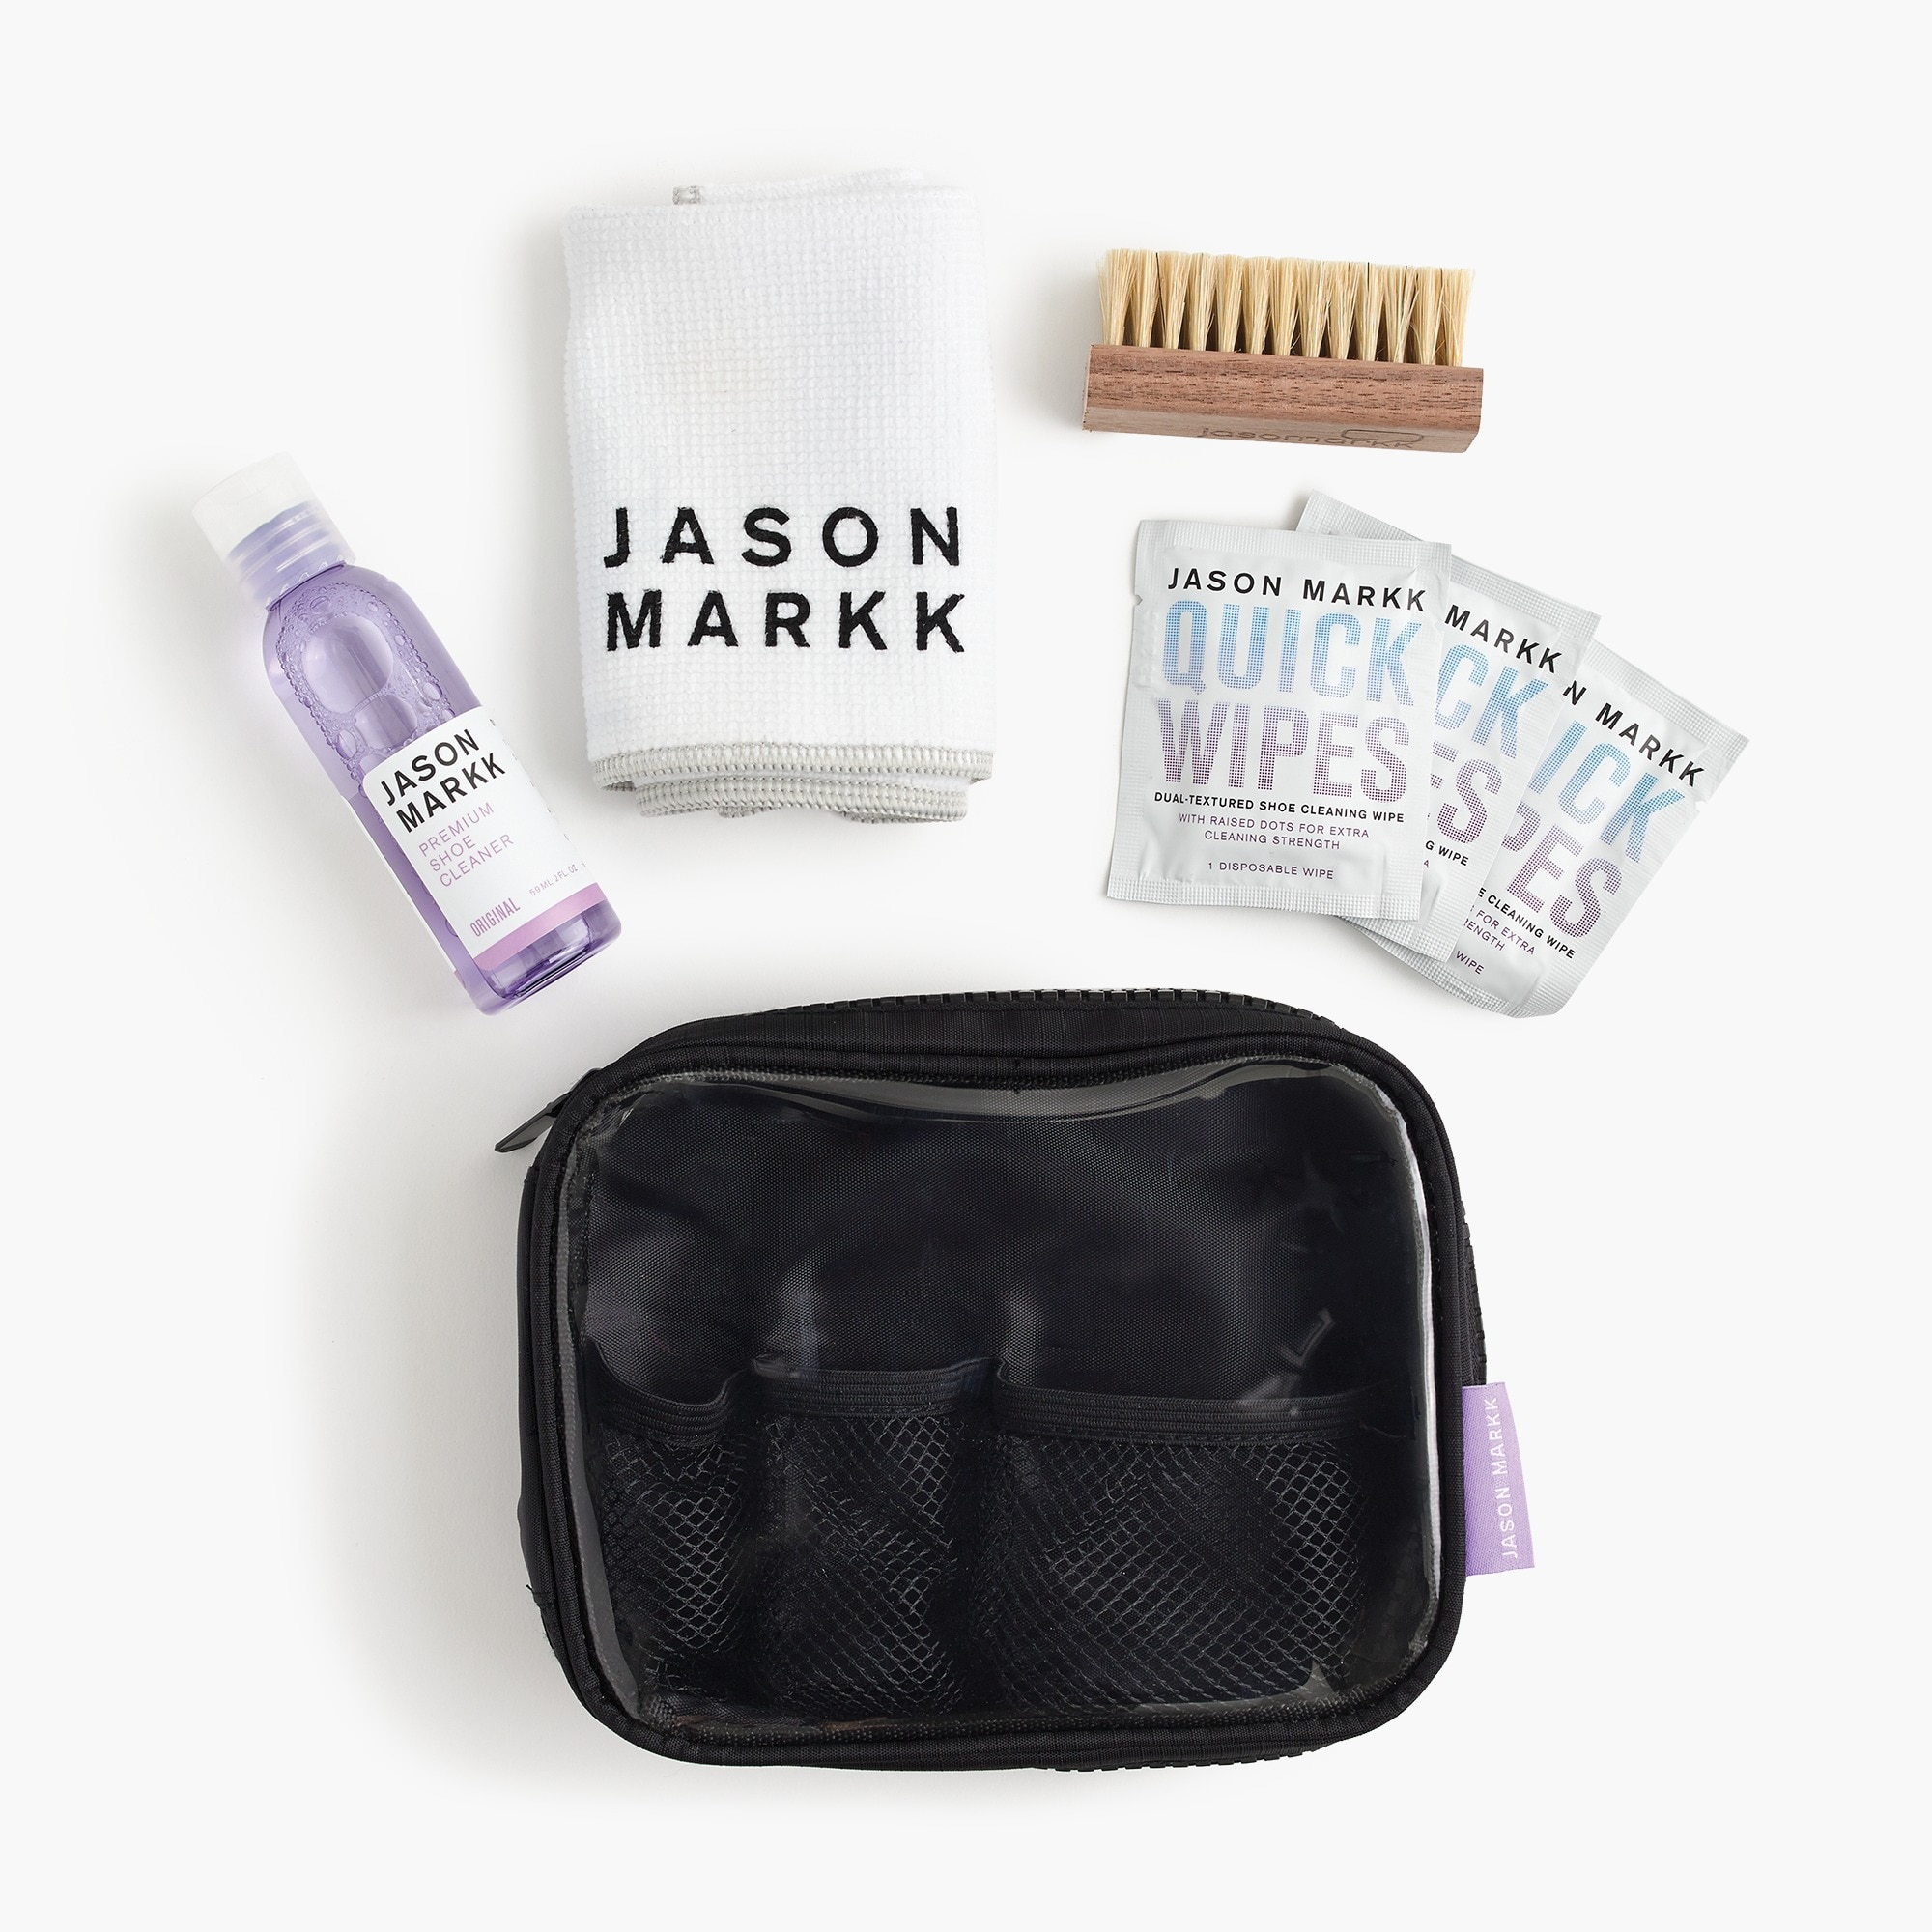 Jason Markk™ sneaker cleaning travel kit men j.crew in good company c